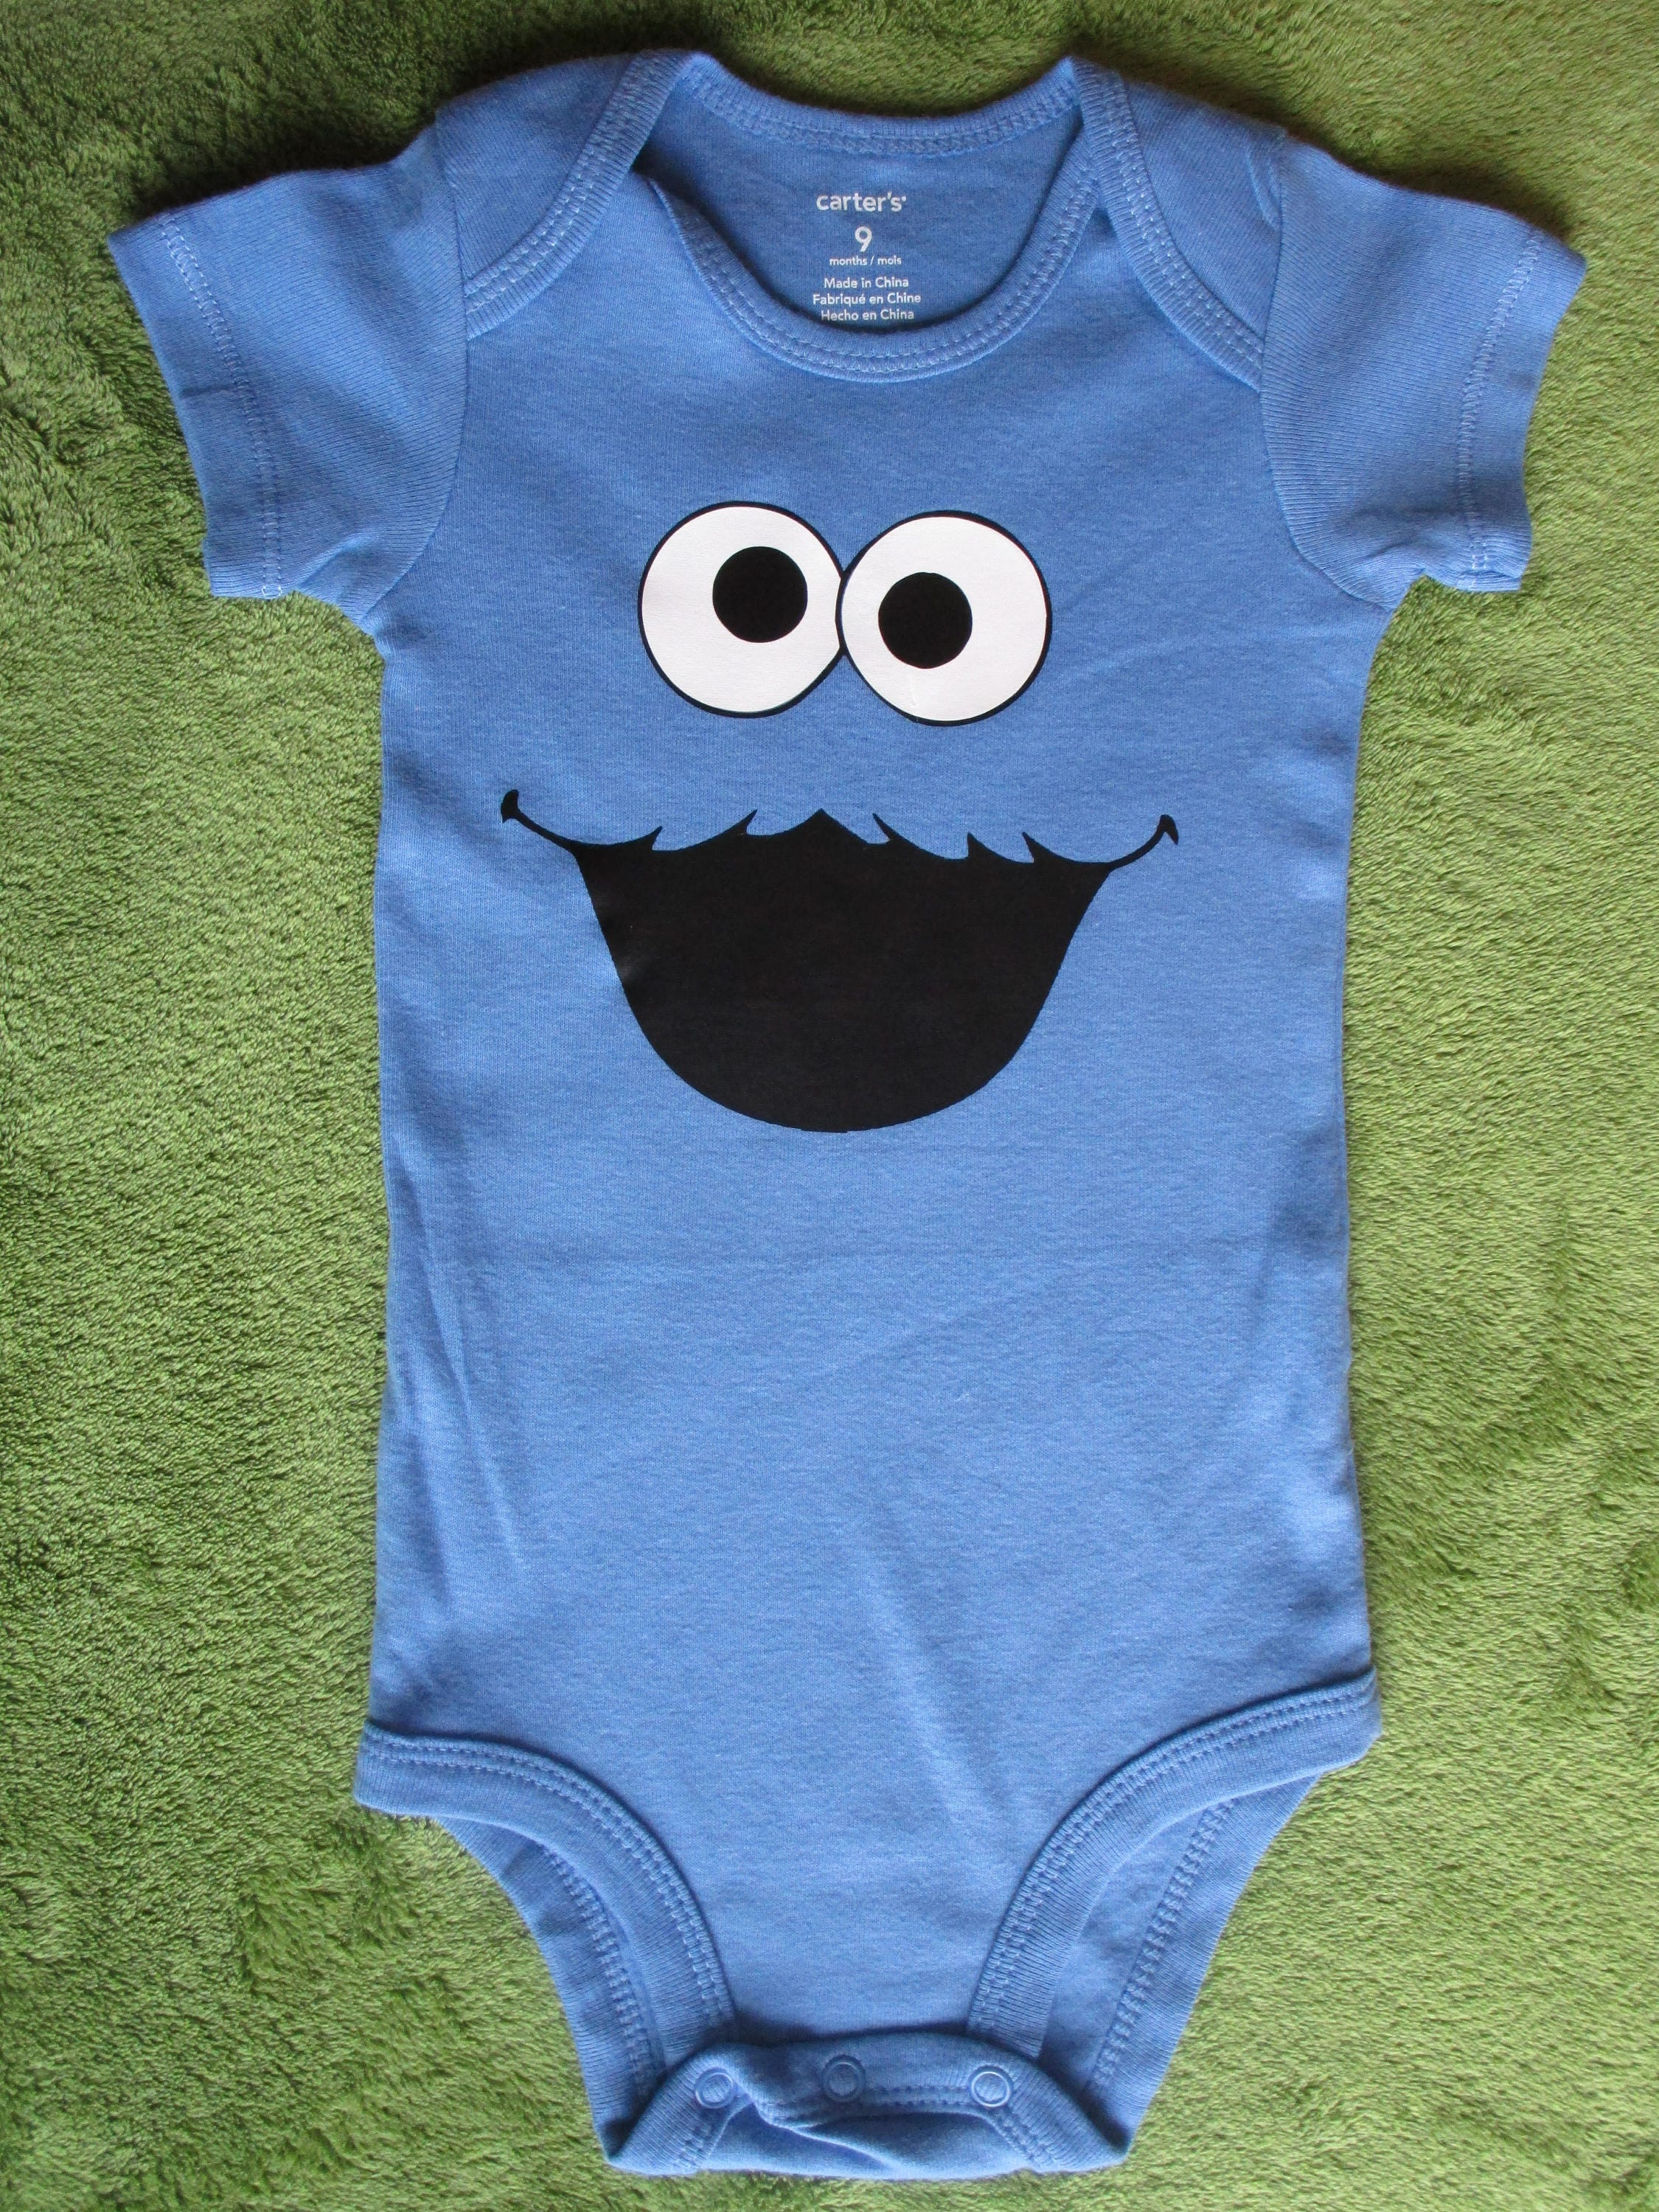 Cookie Monster Baby esie Baby Shower Gift Funny Baby